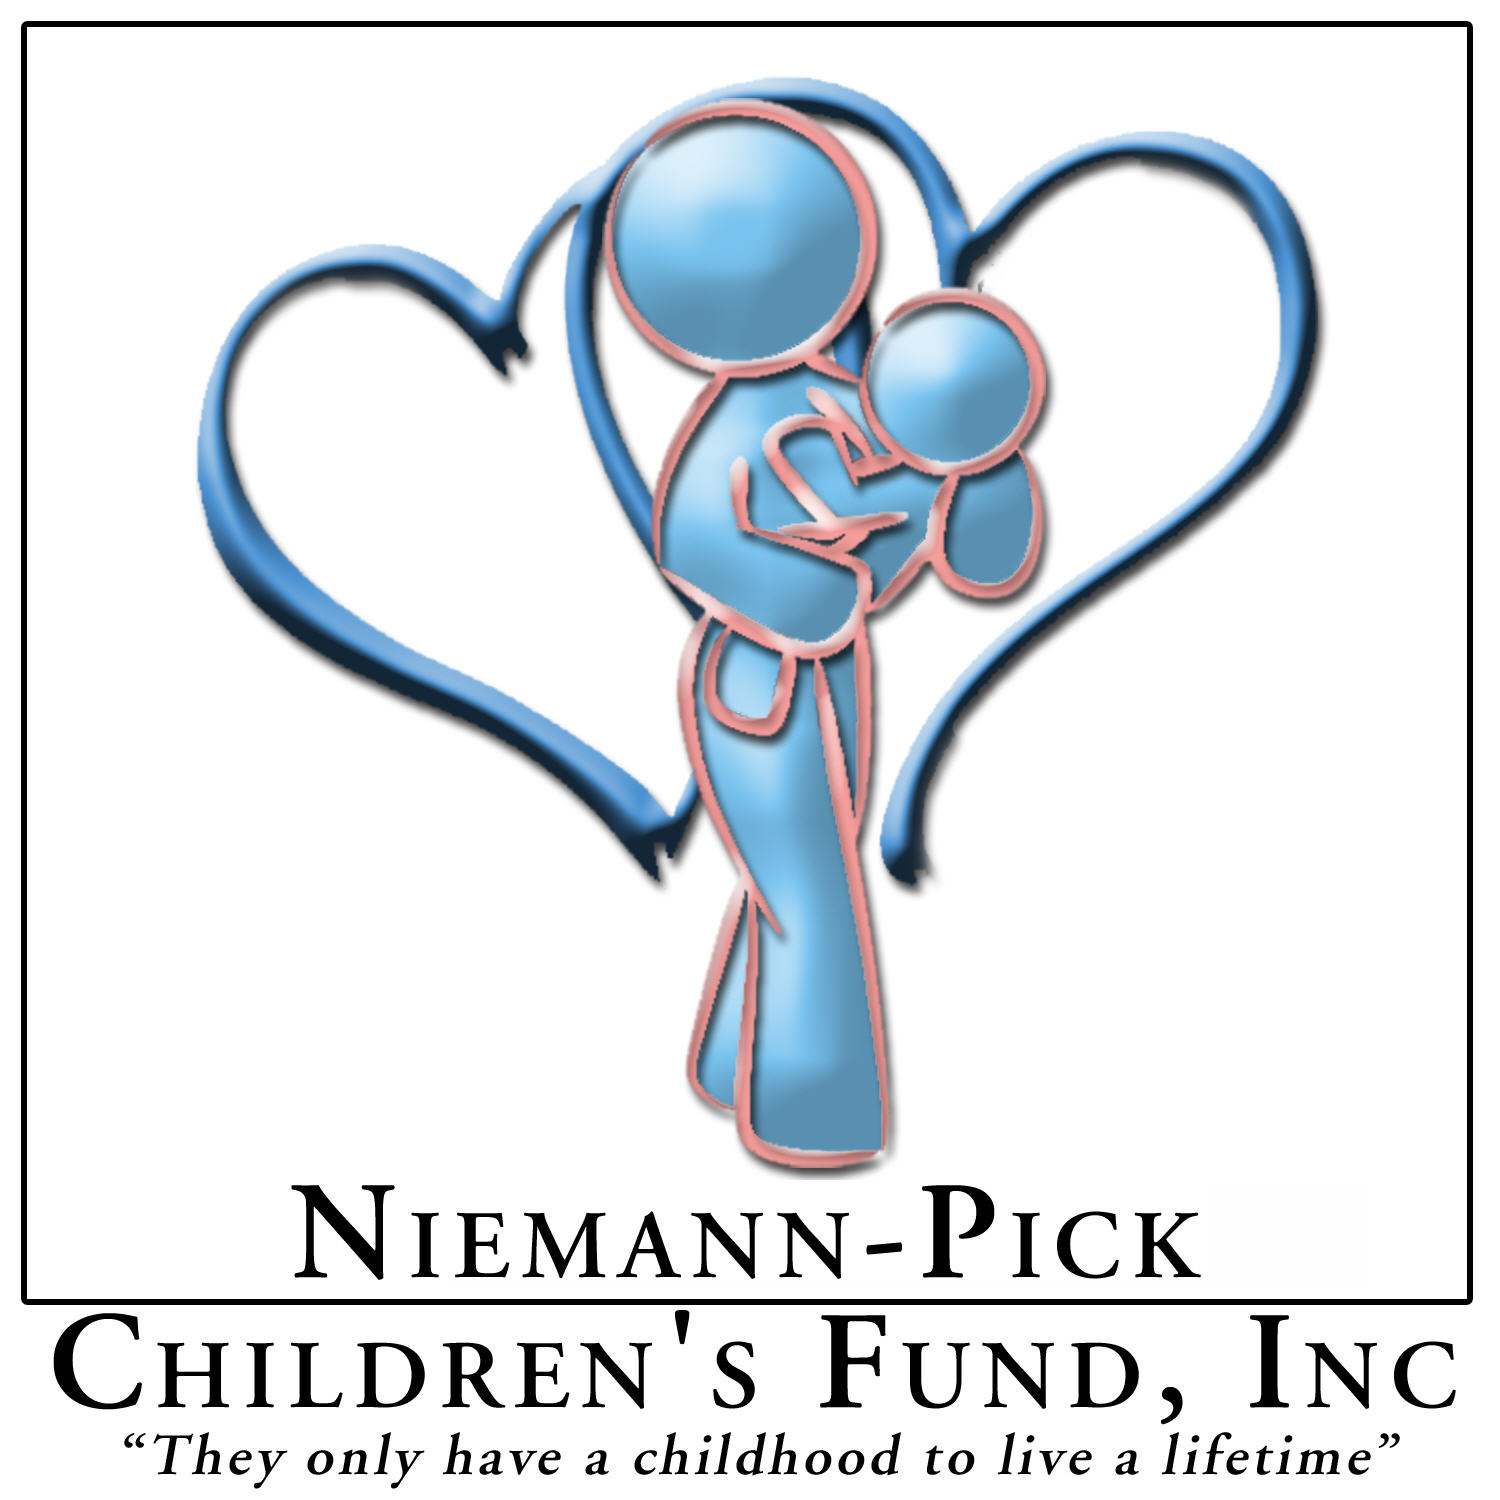 Niemann-Pick Children's Fund, Inc